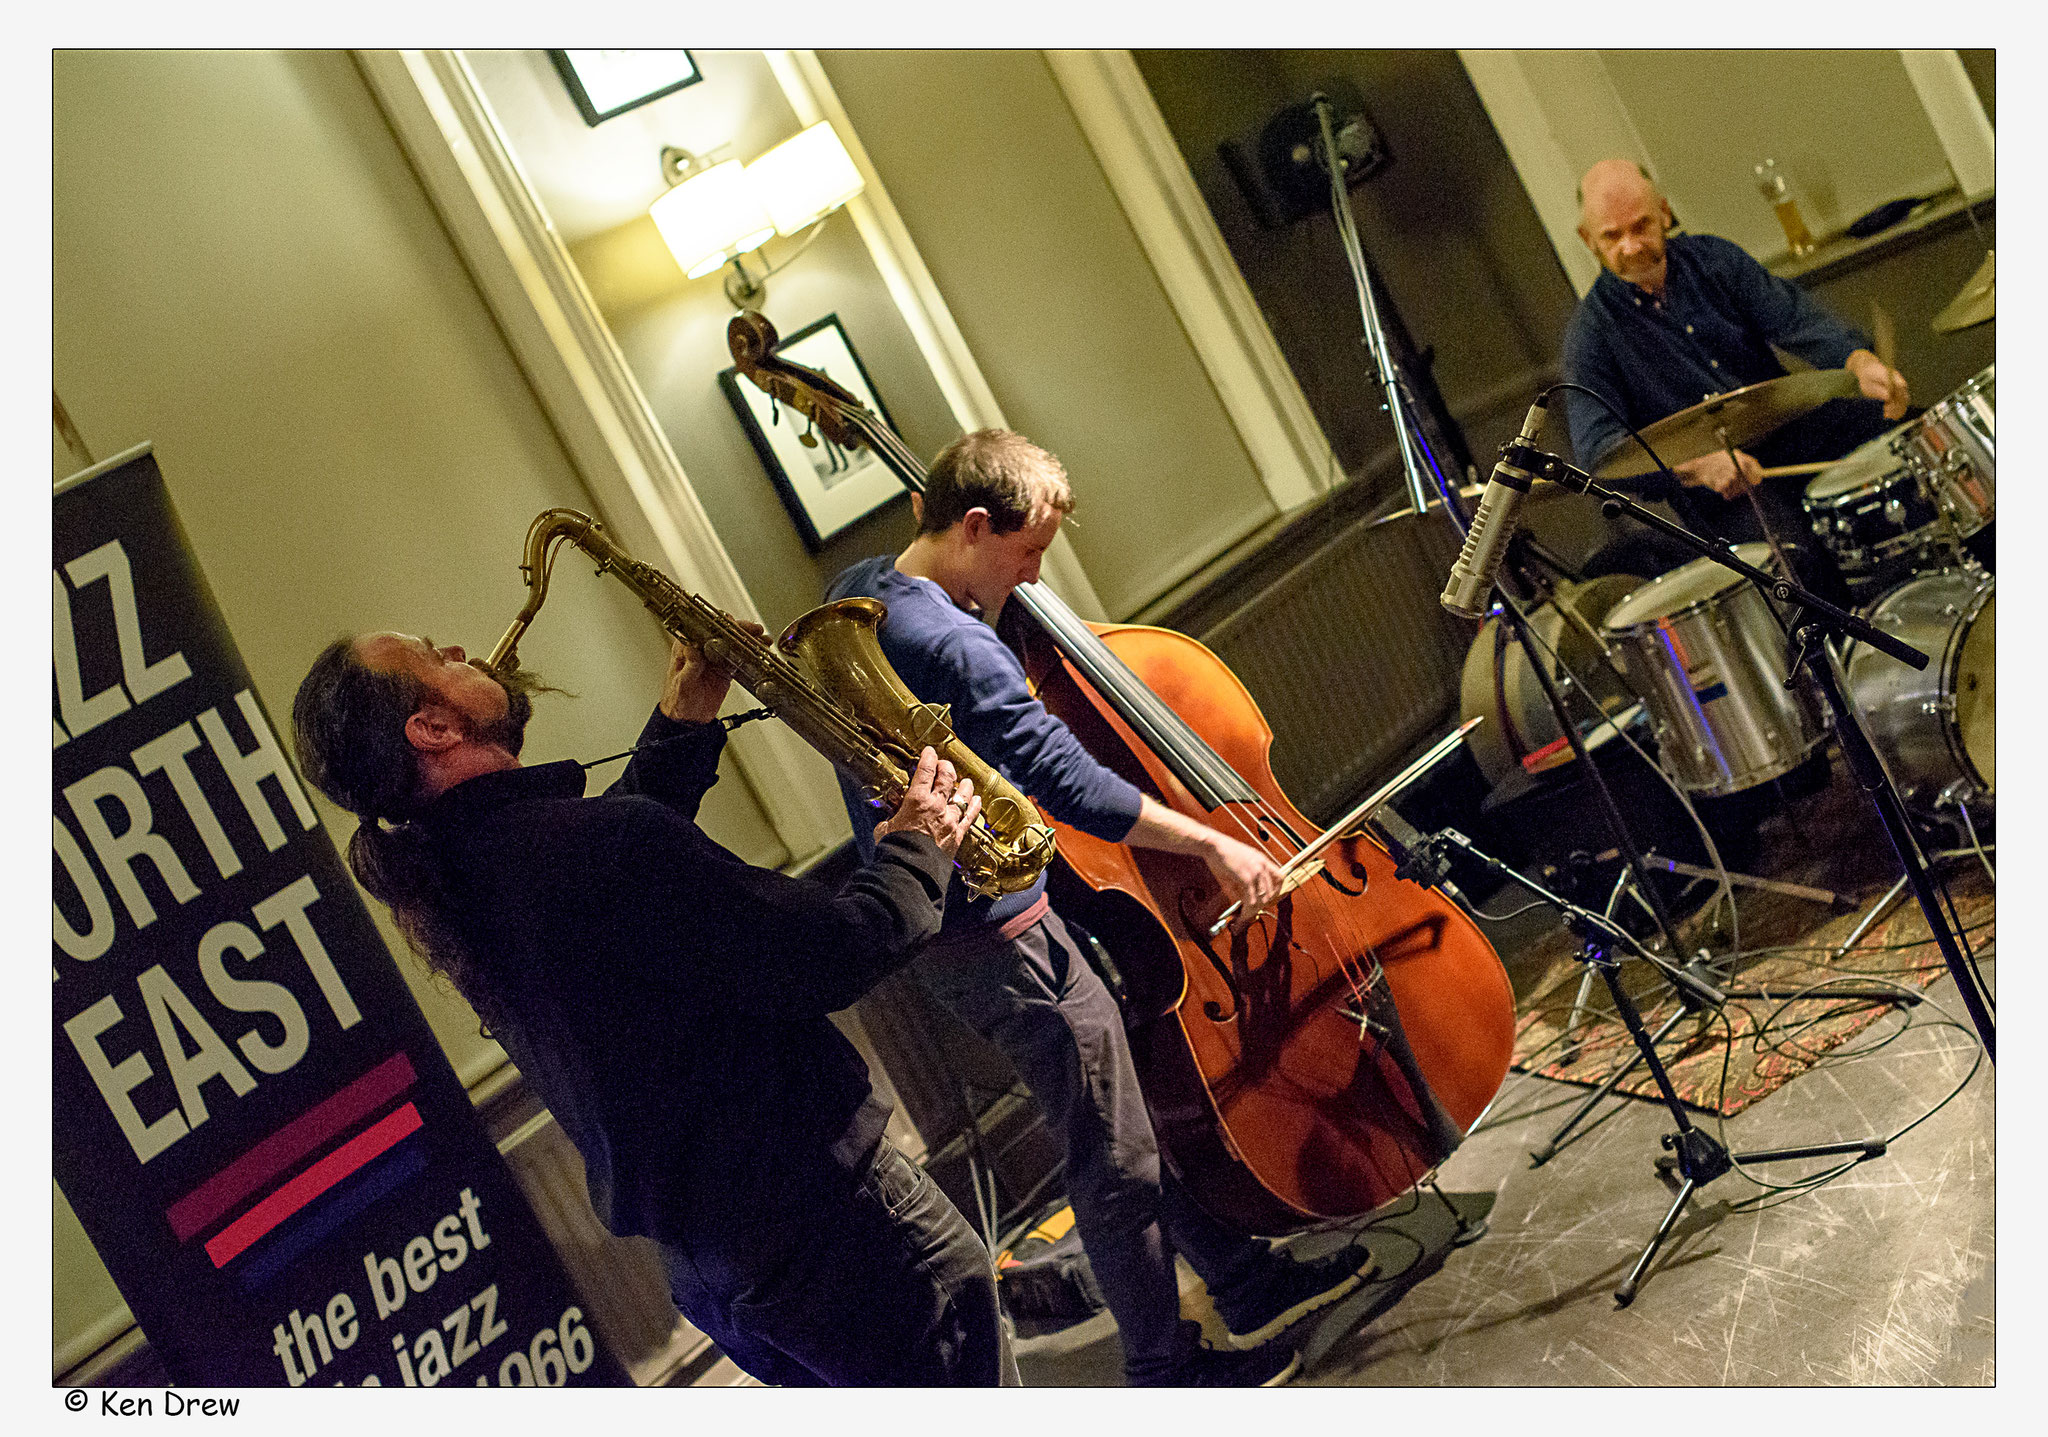 Hiby/Bardon/Hession      New Castle  at The Bridge Hotel 2016        © Ken Drew